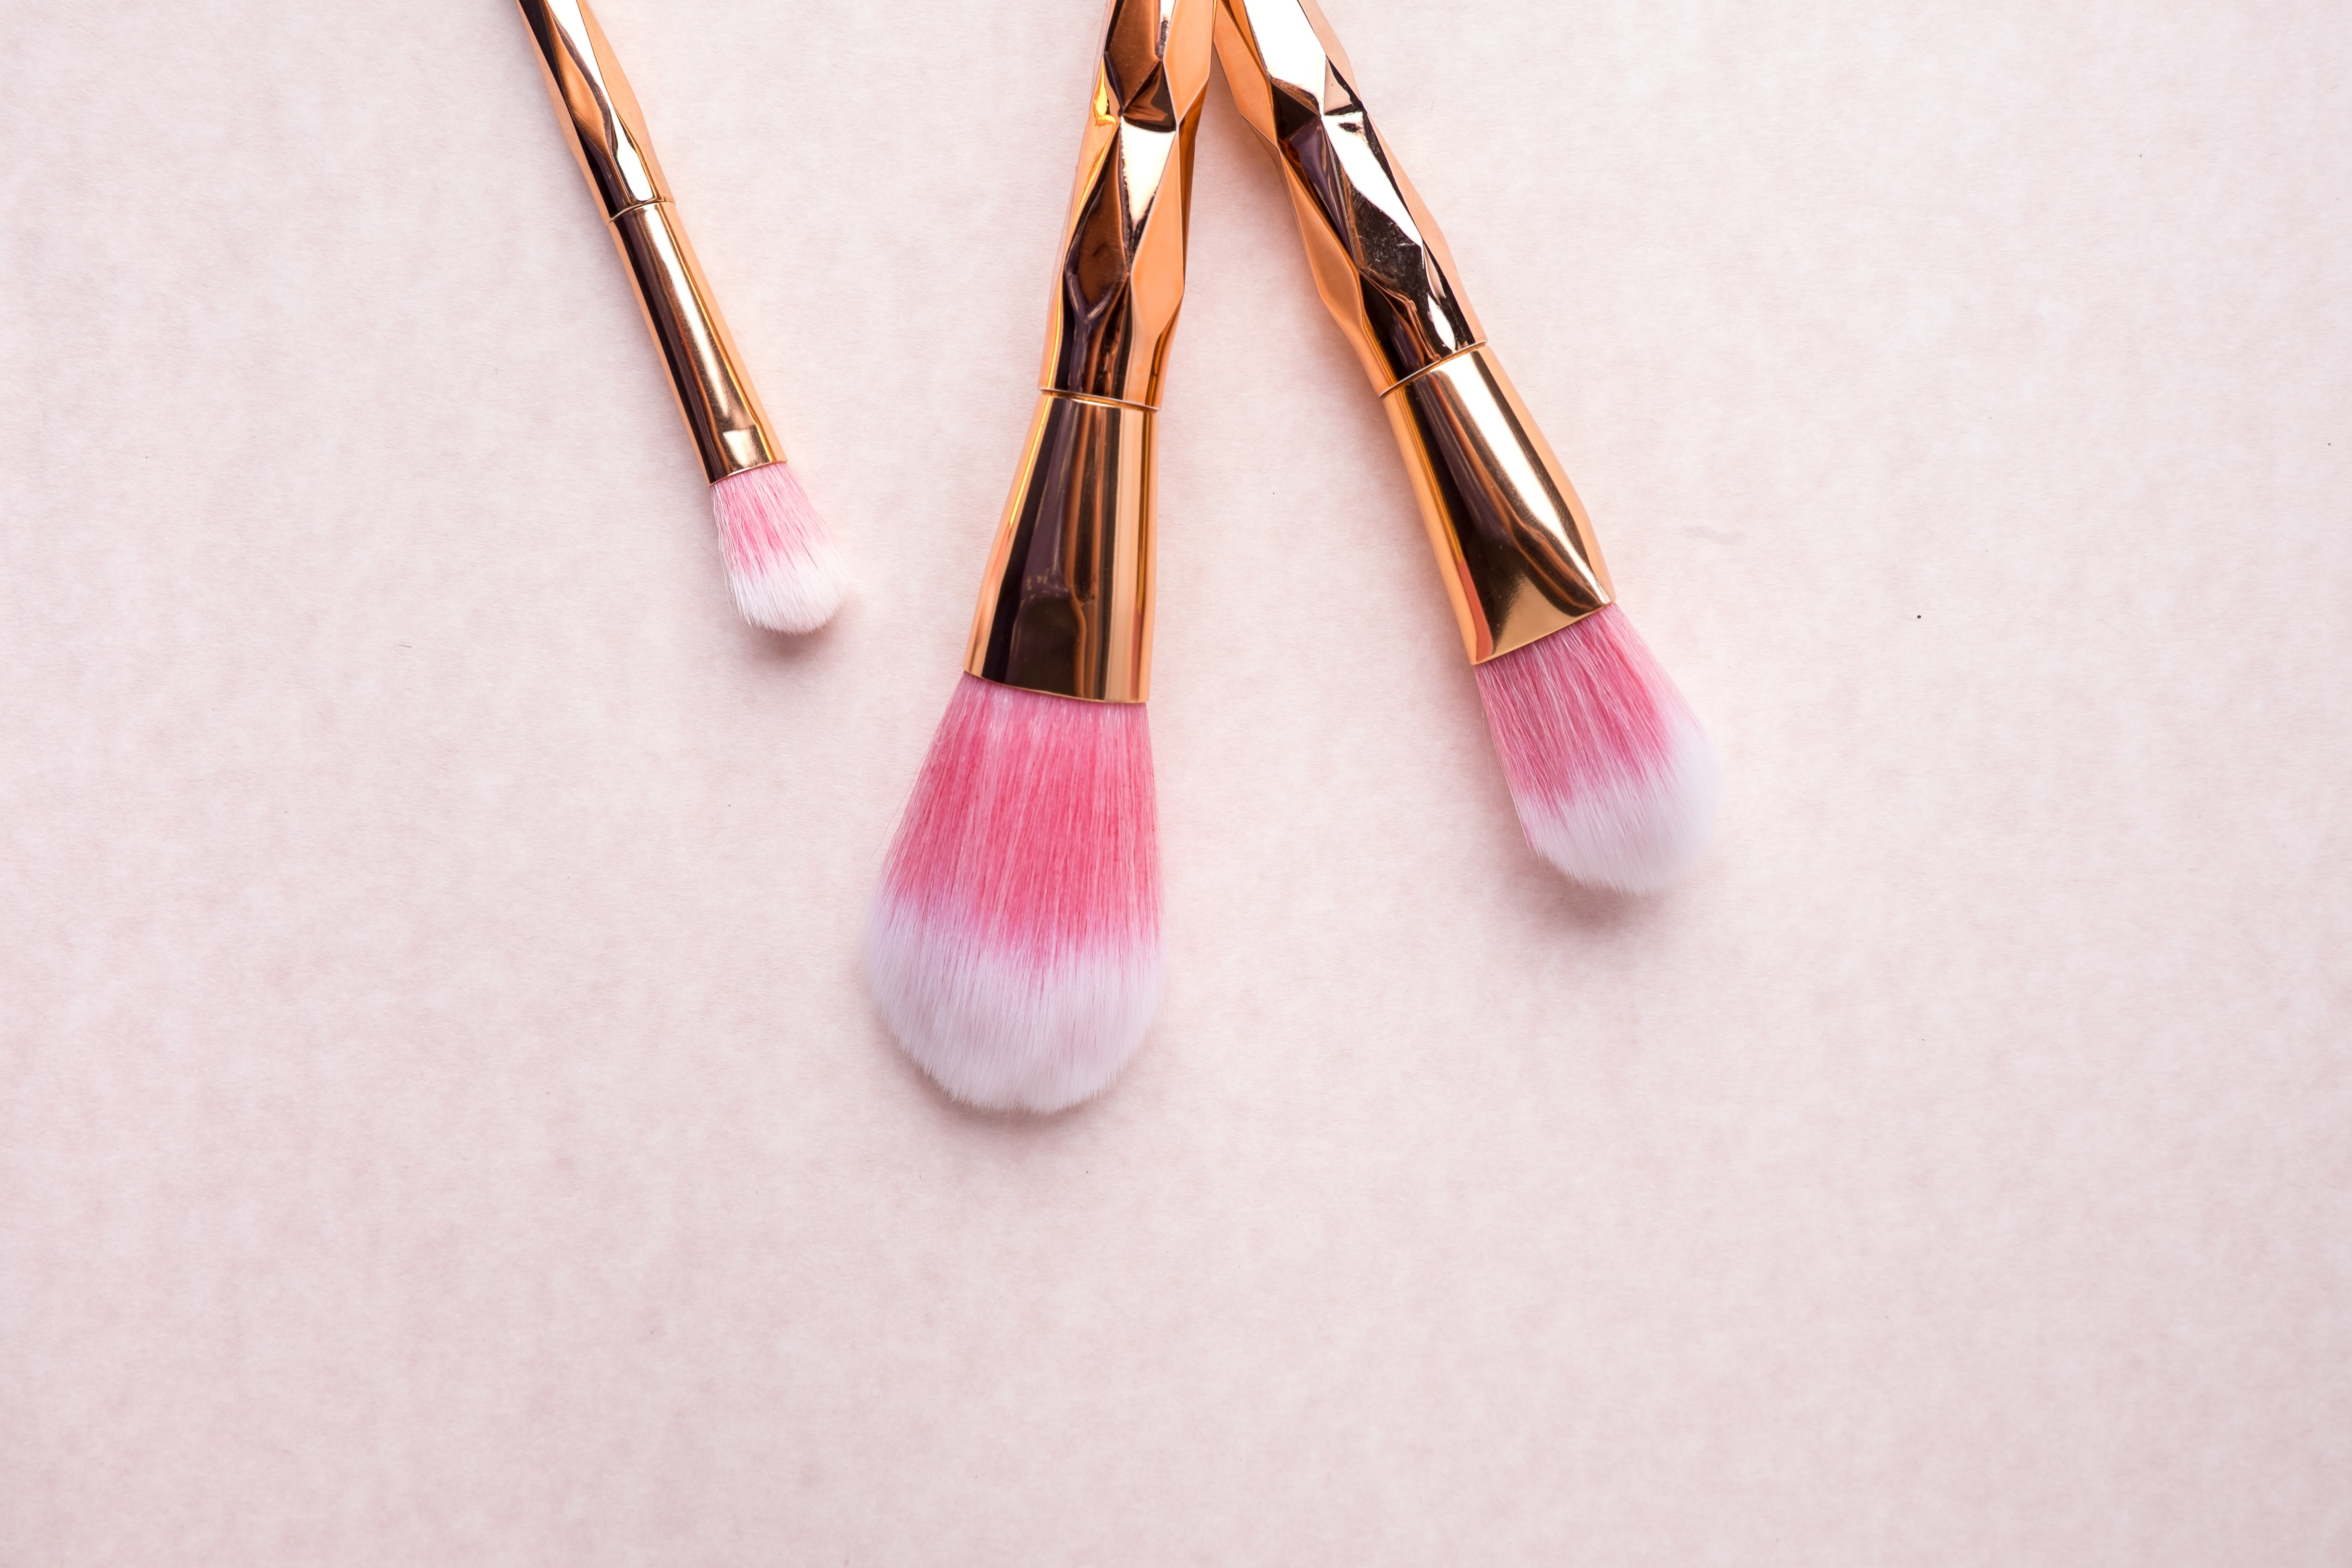 gold-colored makeup brushes